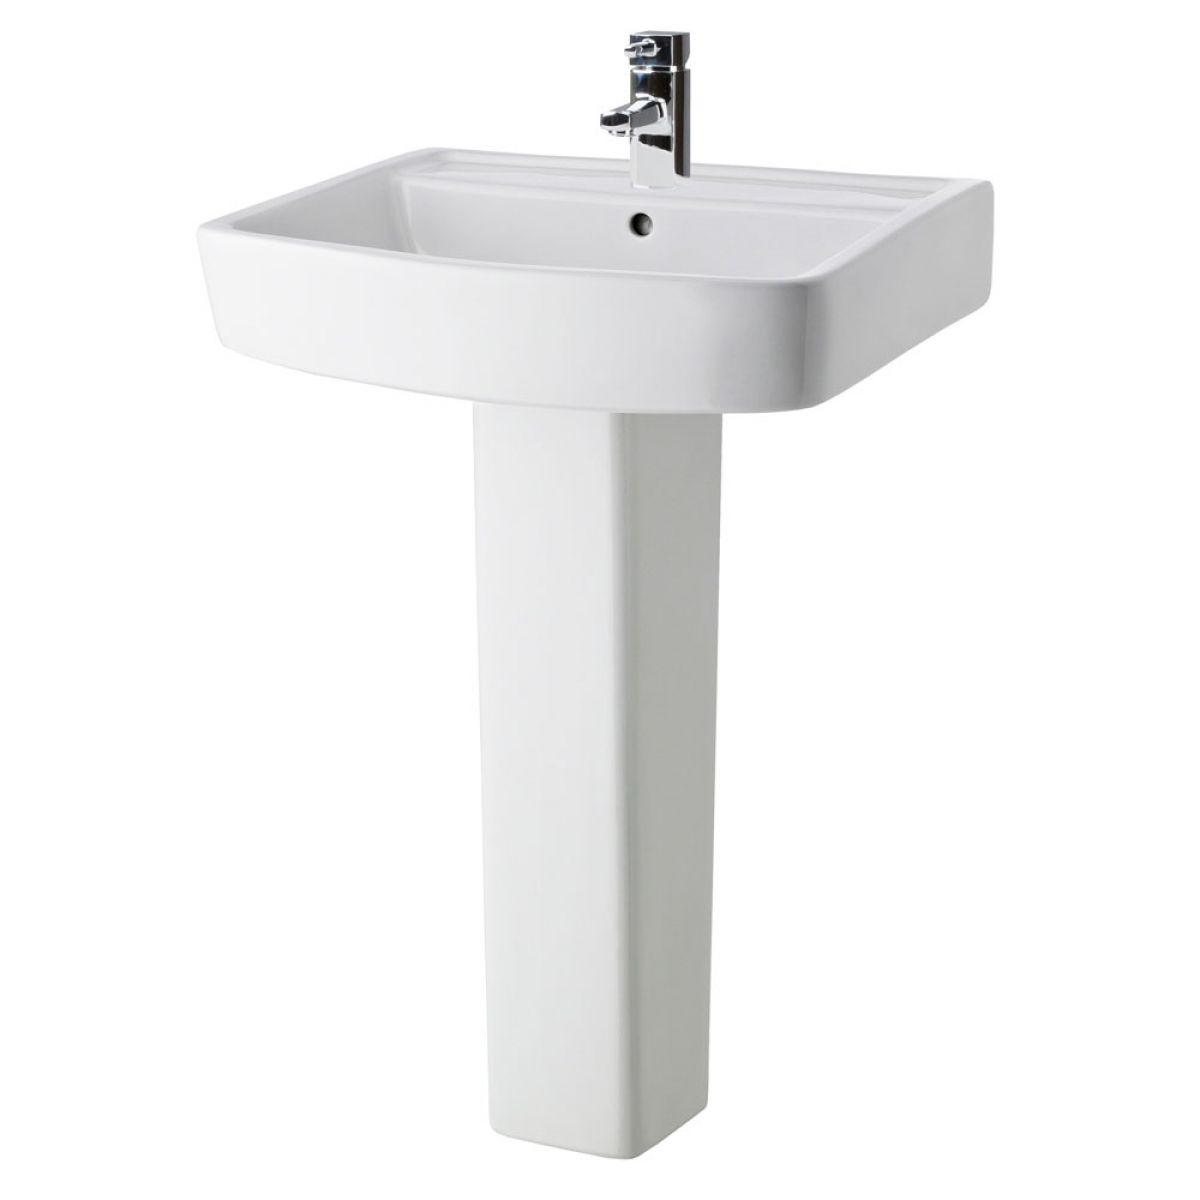 Premier Bliss 1 Tap Hole Basin with Full Pedestal 600mm